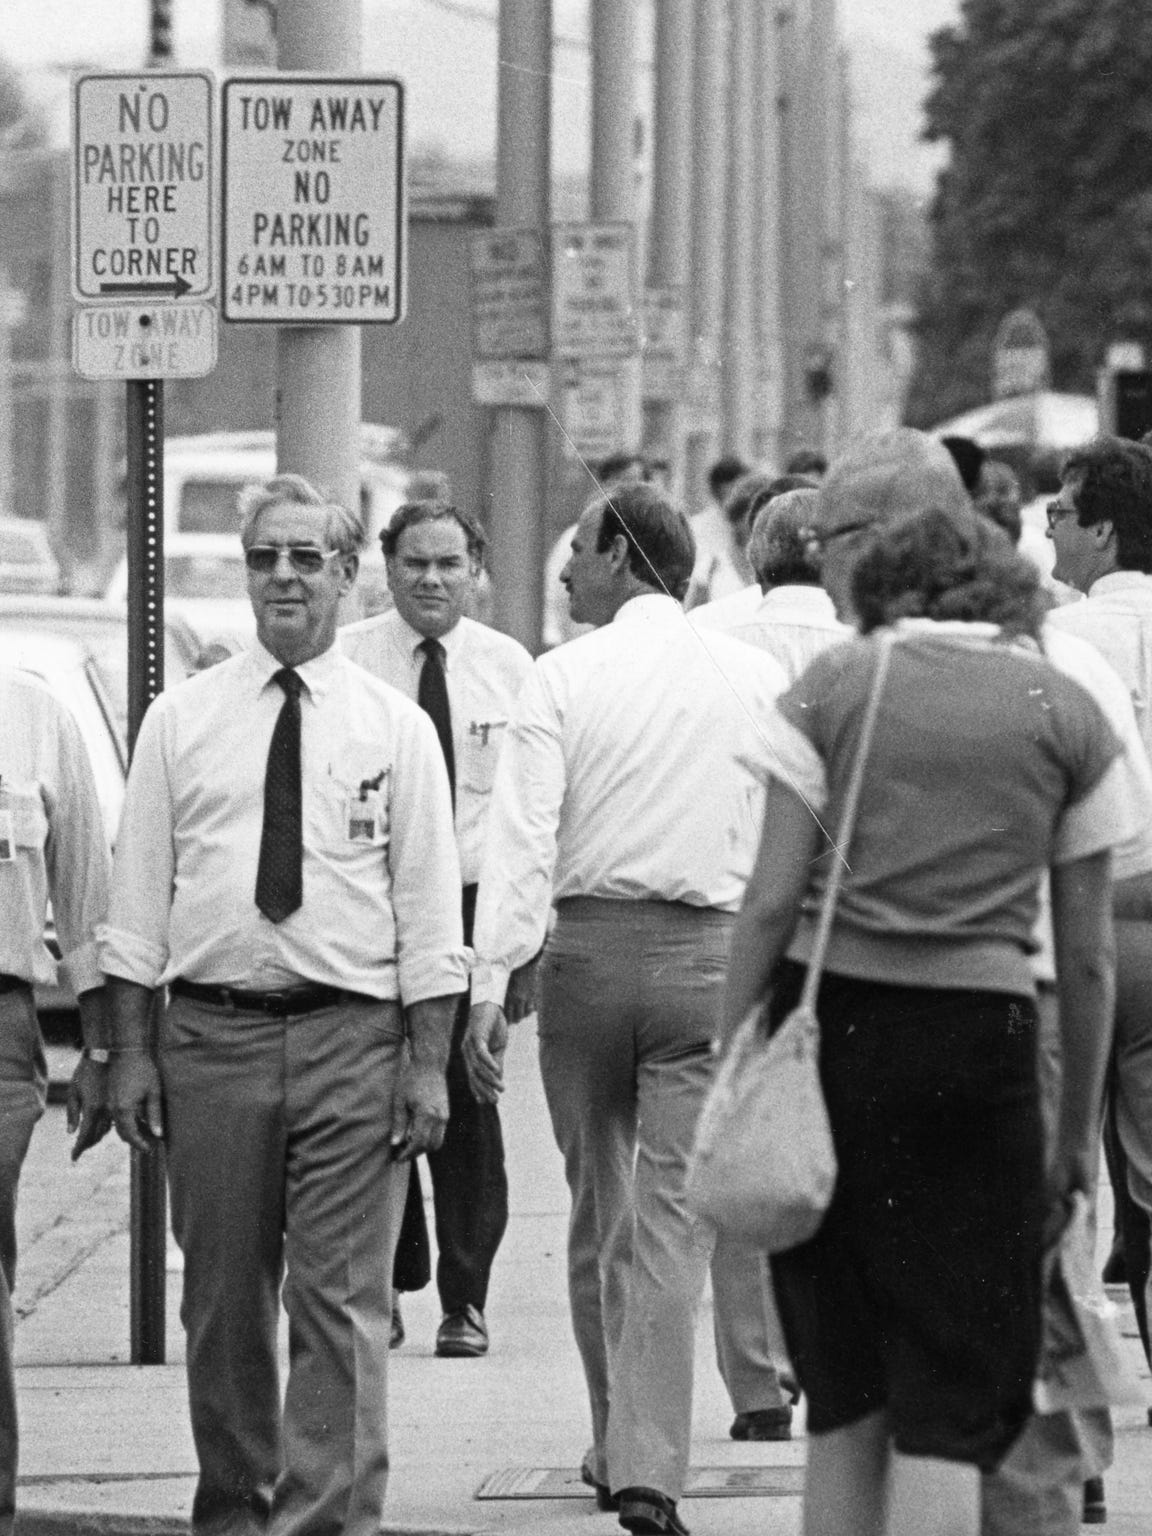 In the early 1980's, Endicott's main street with some